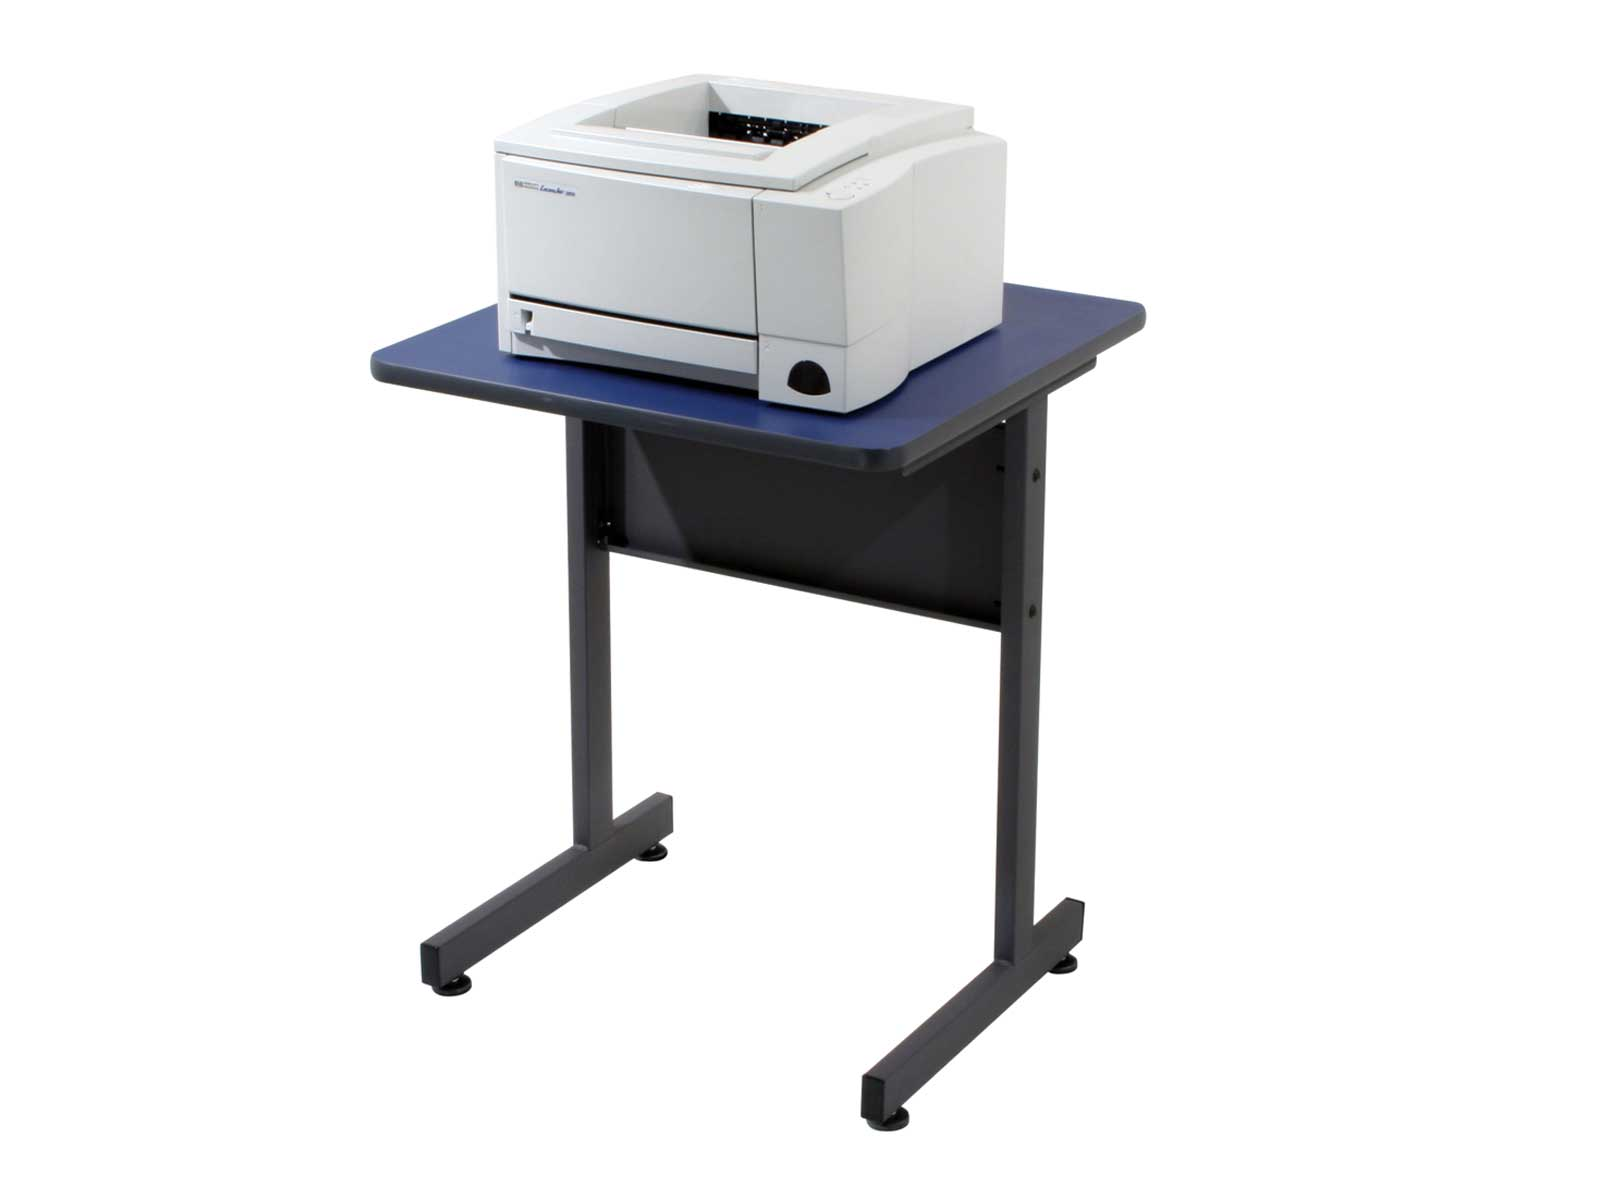 Bi Lateral Computer Printer Stands